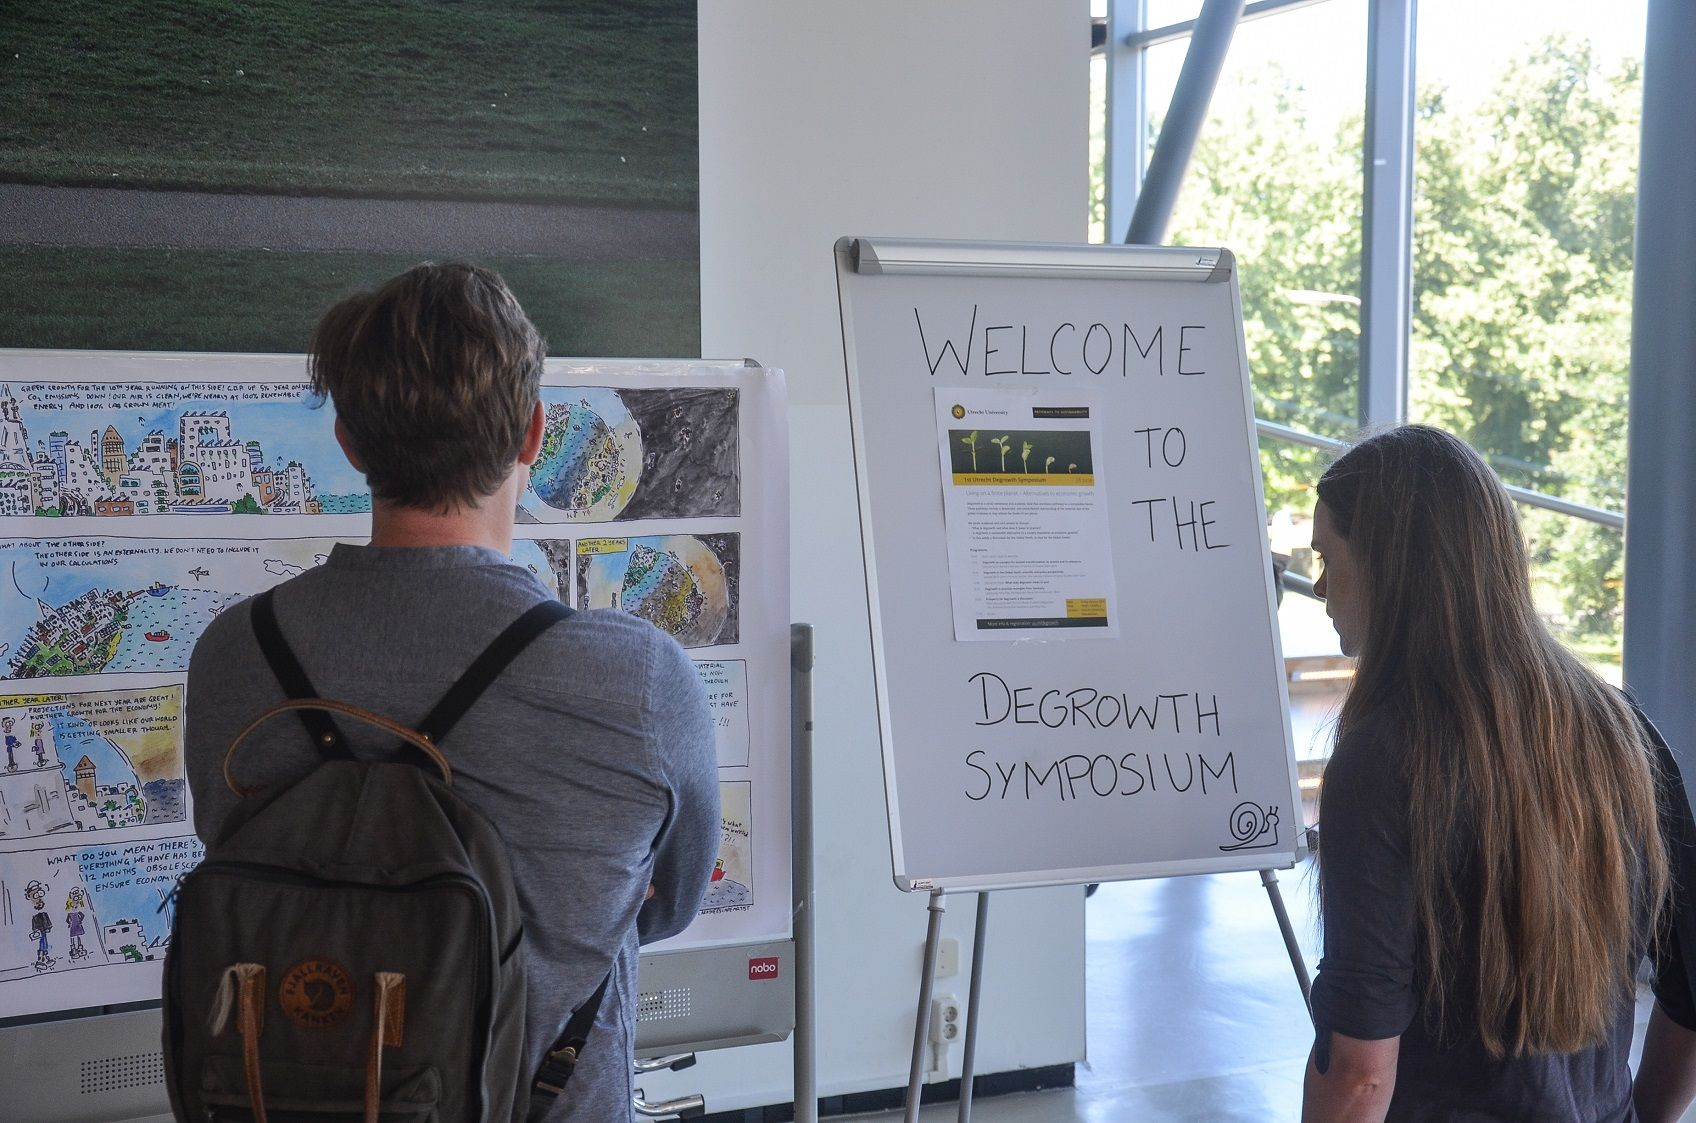 Overview of the first Utrecht Degrowth Symposium